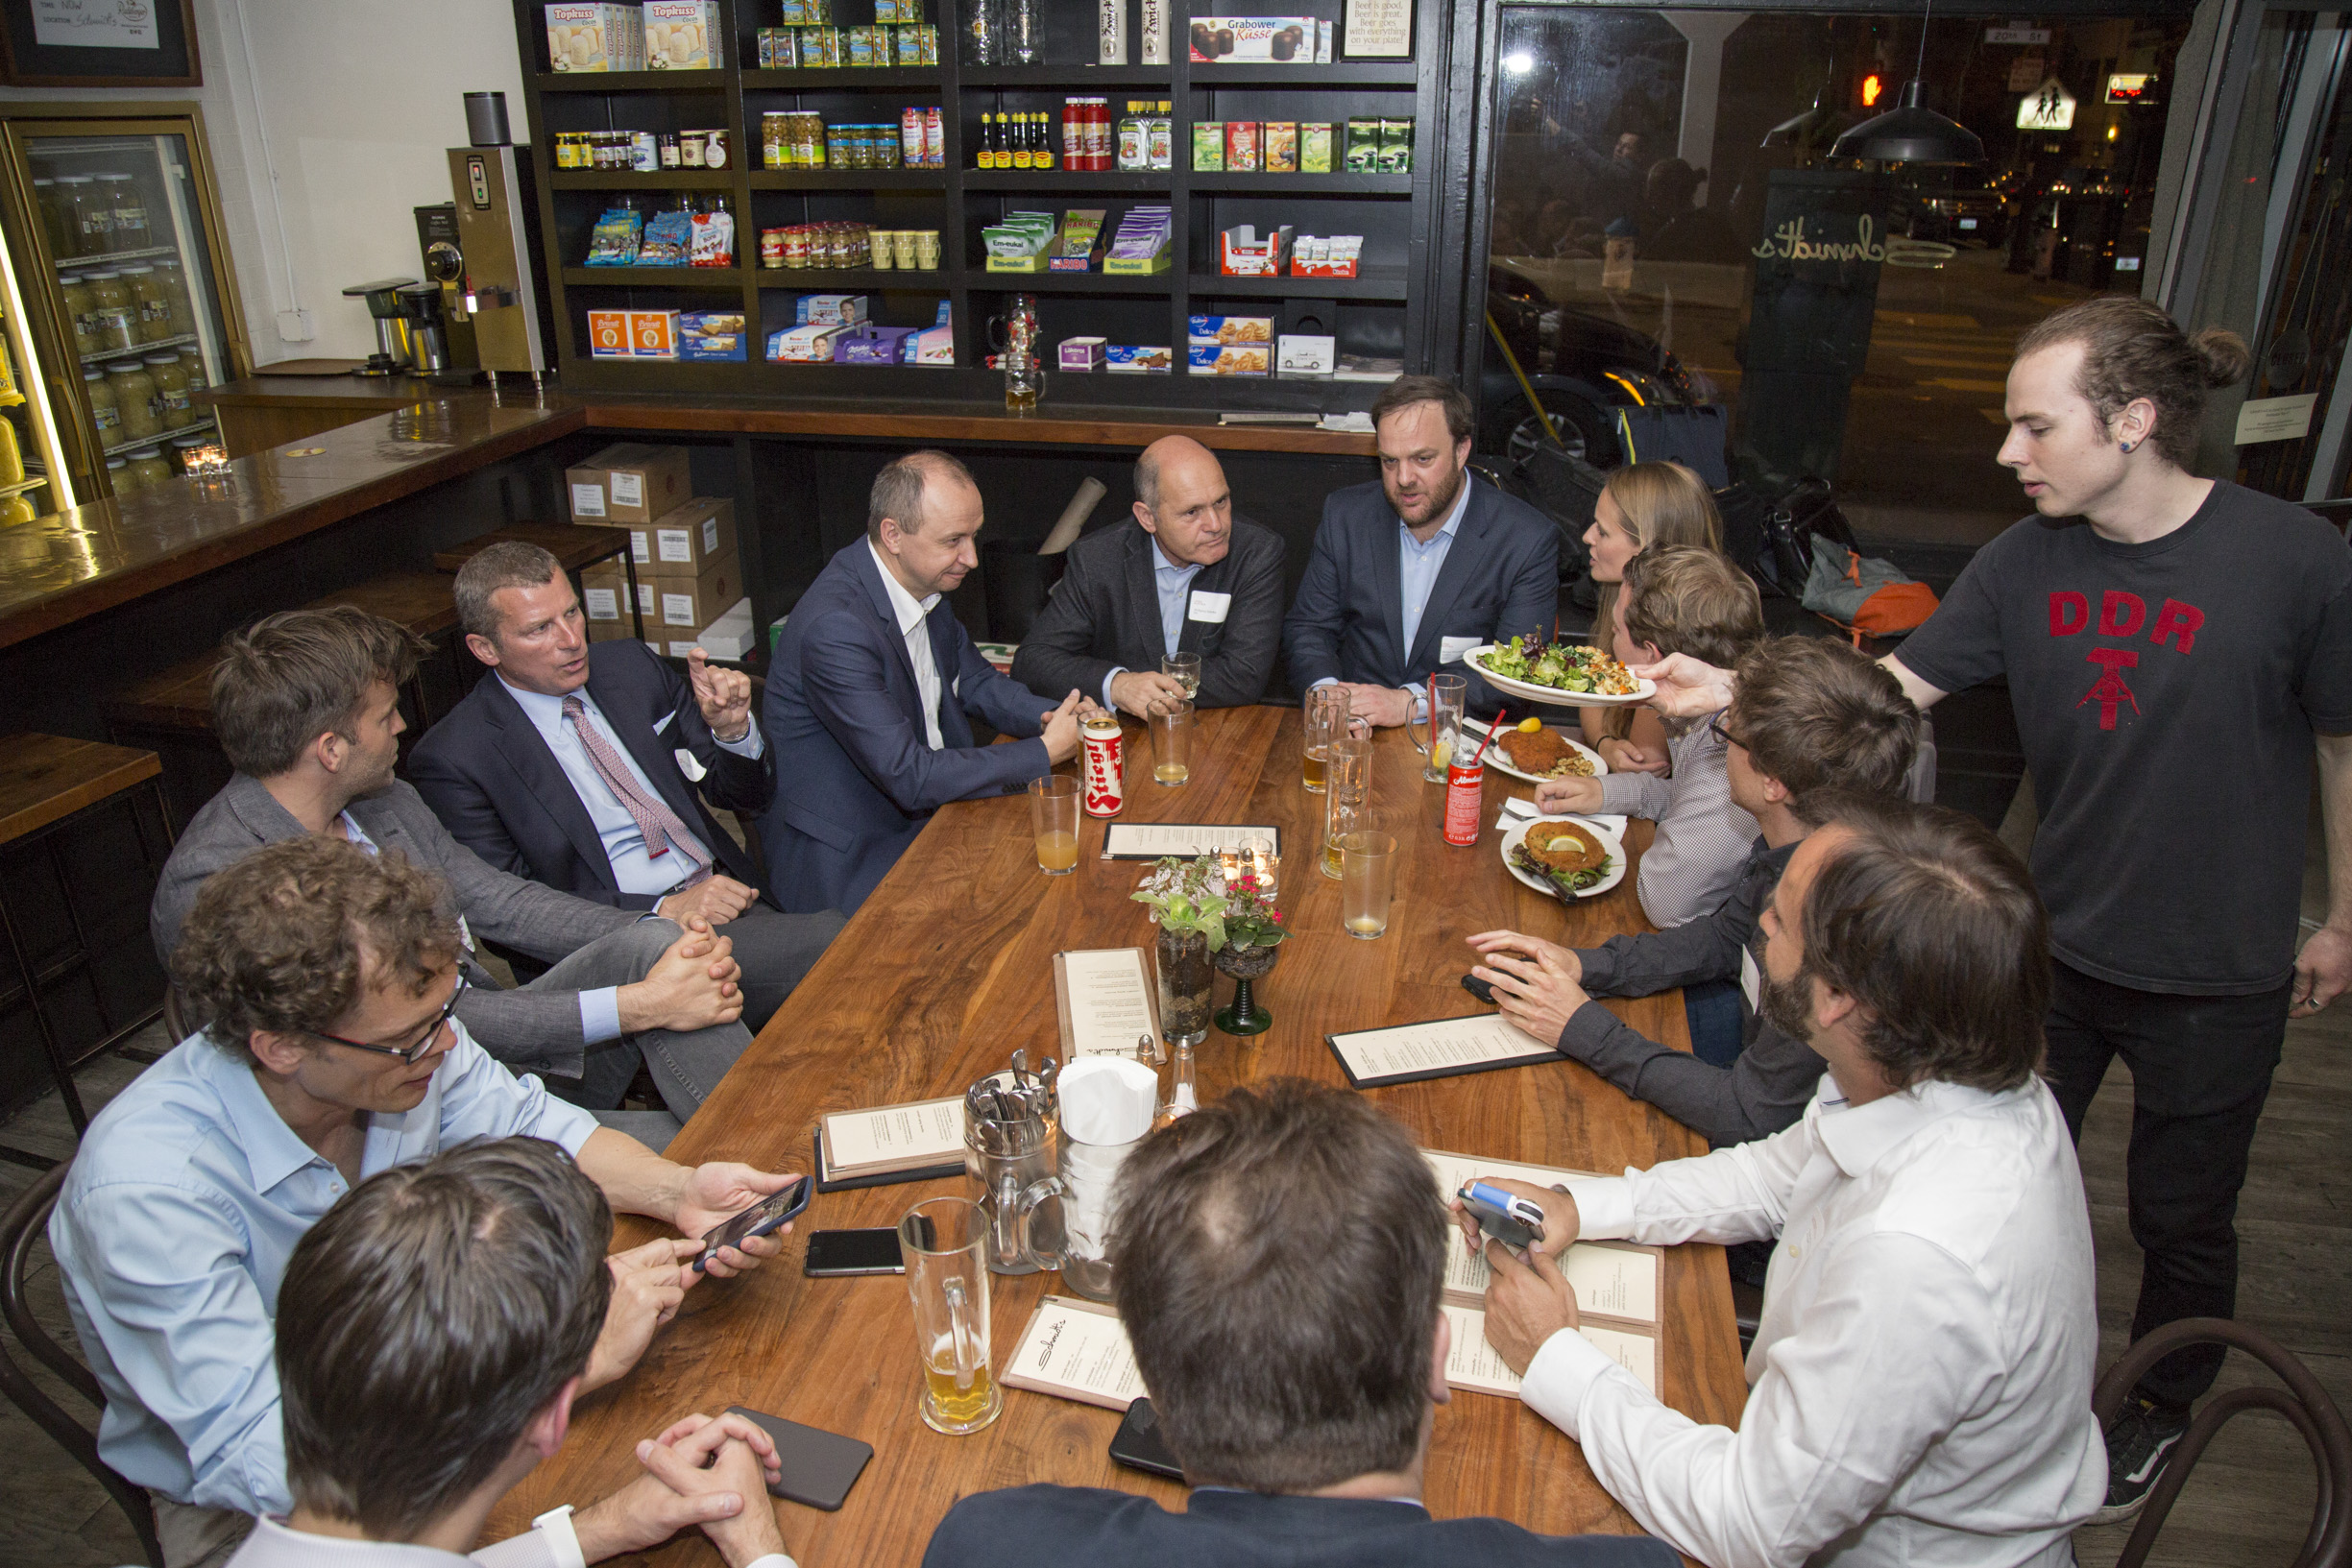 Federal Minister Wolfgang Sobotka meets with Austrian expats on the West Coast at Restaurant Schmidt's. Photo: BMI/ Jürgen Makowecz